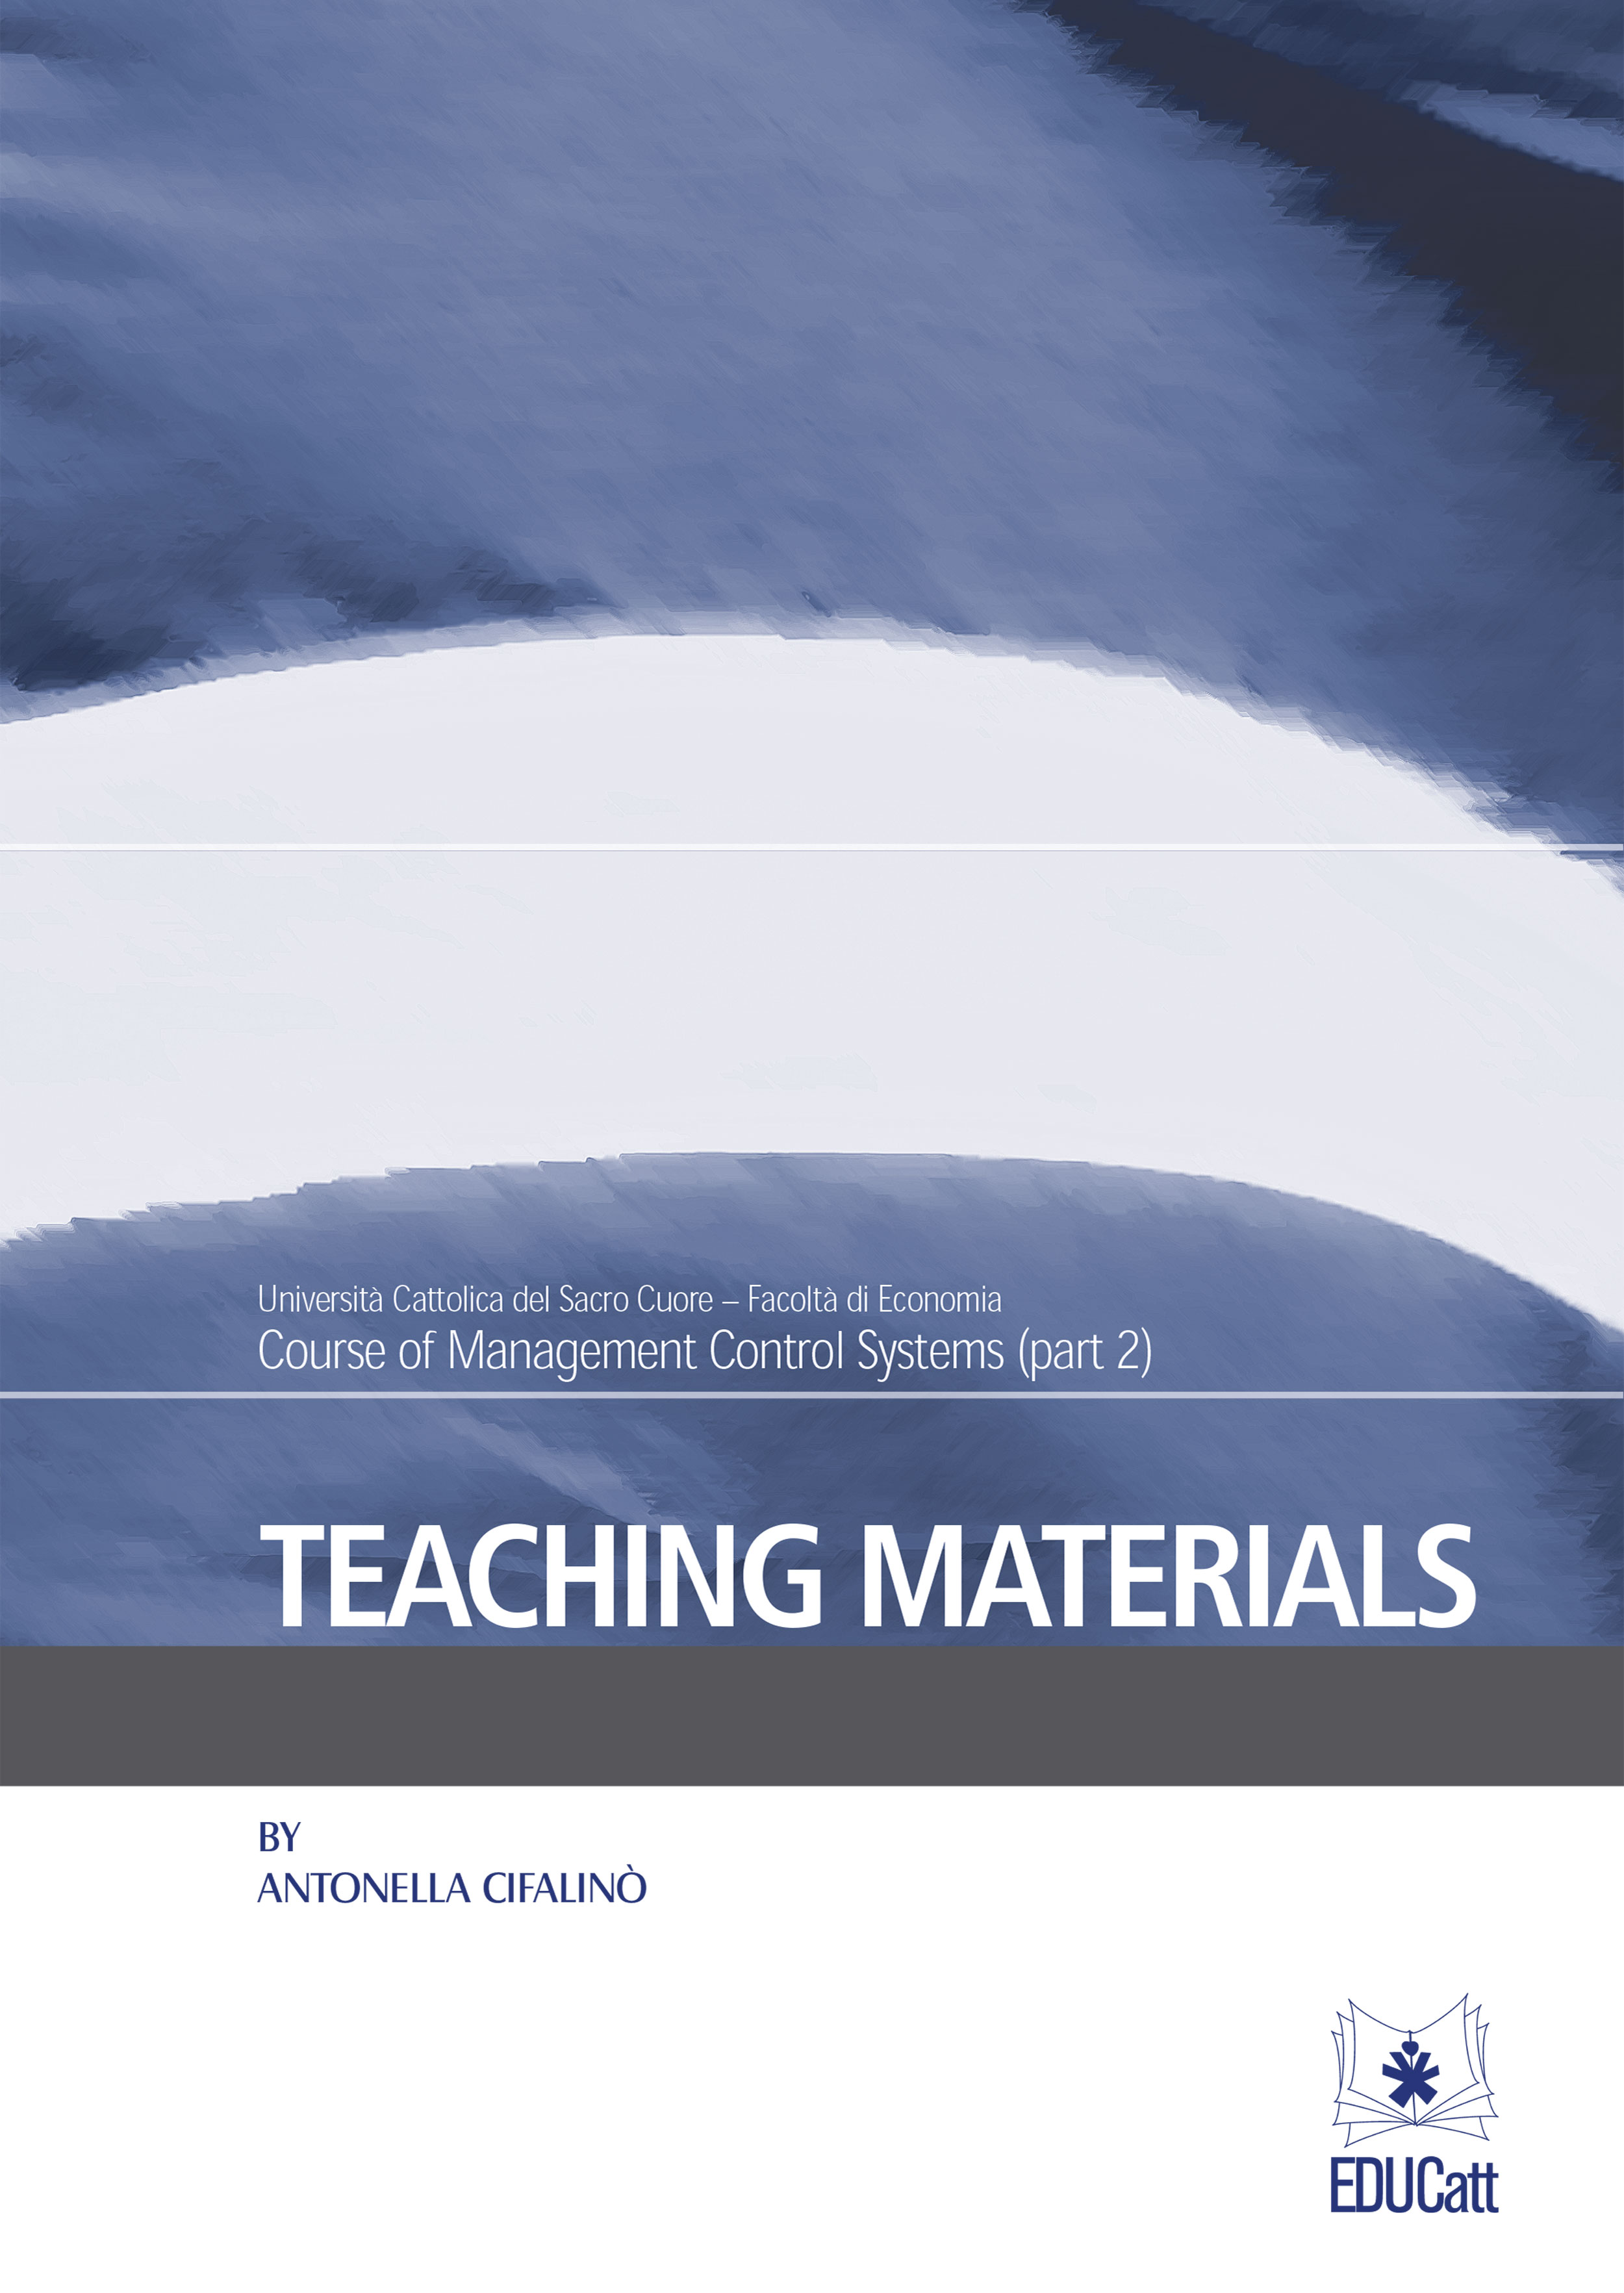 TEACHING MATERIALS - PART 2 - COURSE OF MANAGMENT CONTROL SYSTEMS